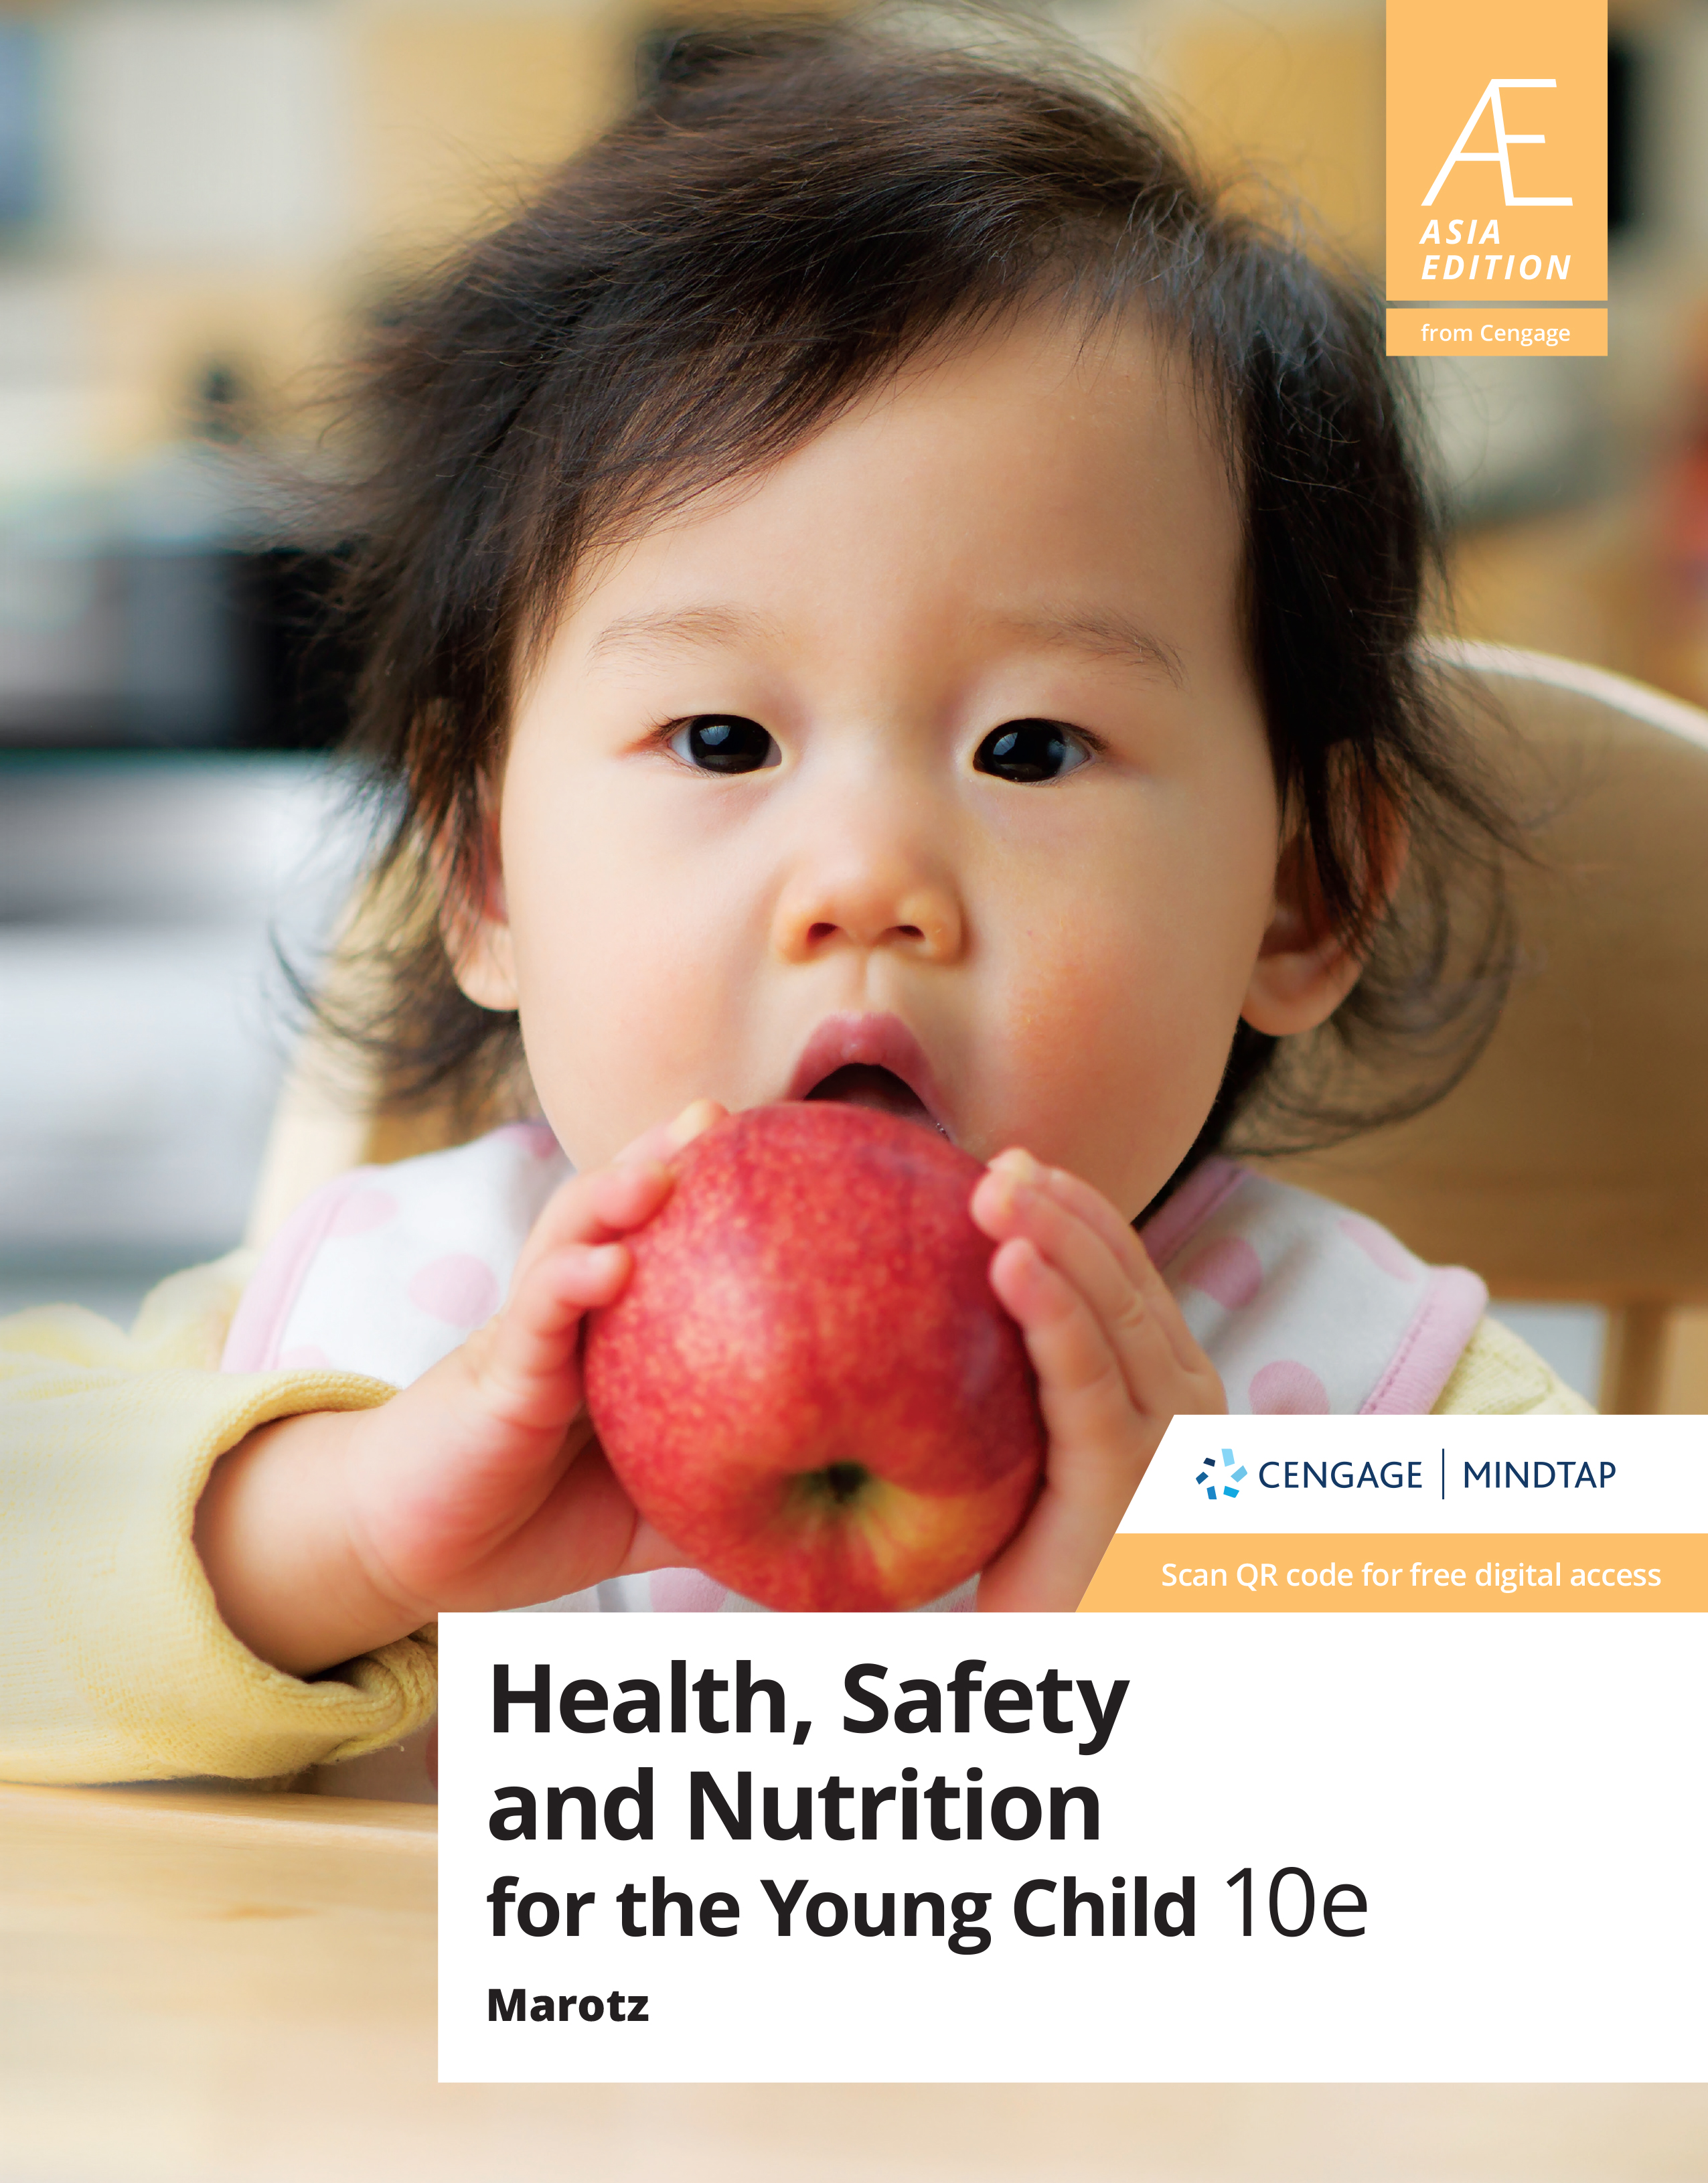 AE Health, Safety, and Nutrition for the Young Child